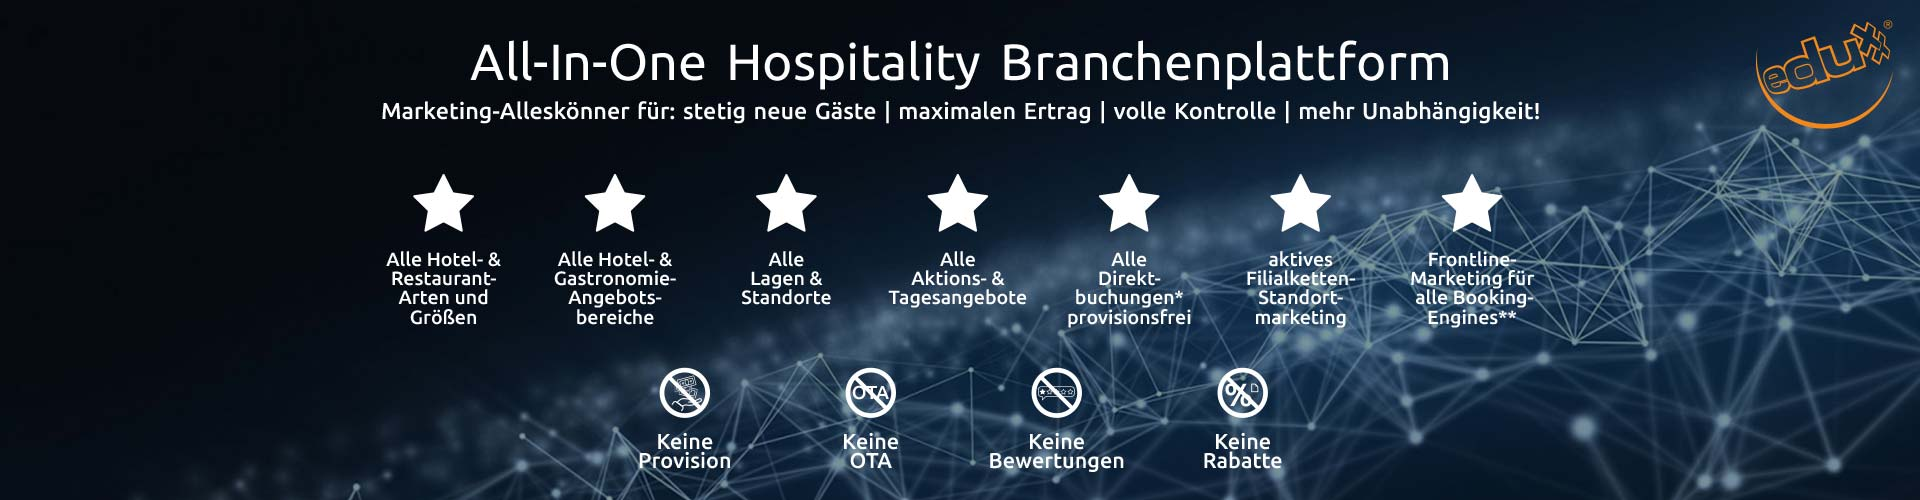 Hospitality Marketing-Plattform für Direkt-Buchungen: Brunch-Lunch-Dinner BLD & regio central RC von yext.